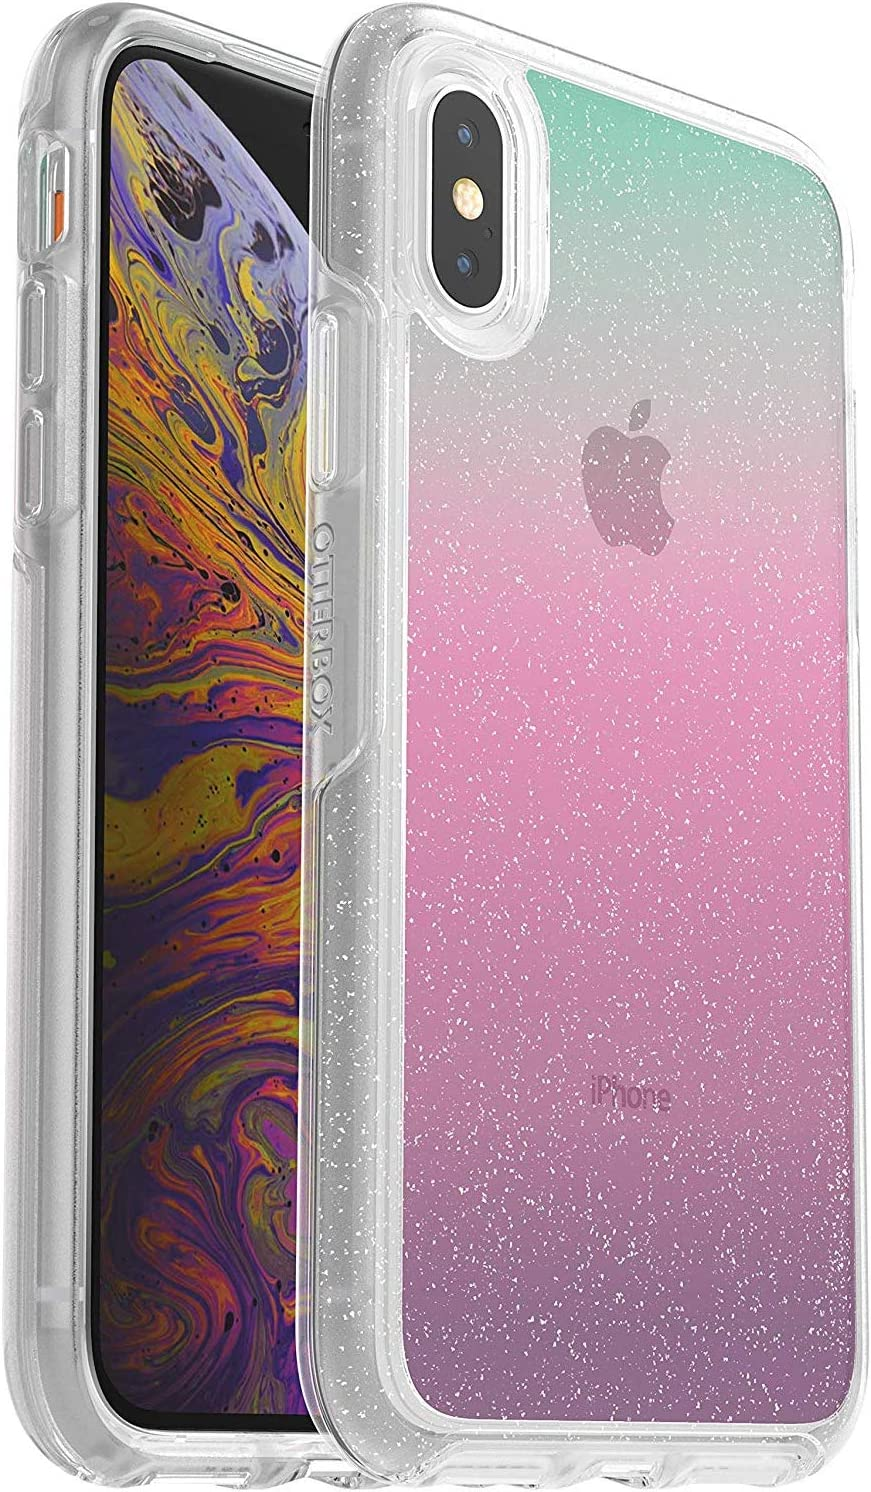 OtterBox Symmetry Series Case for iPhone Xs & iPhone X - Bulk Packaging - Gradient Energy